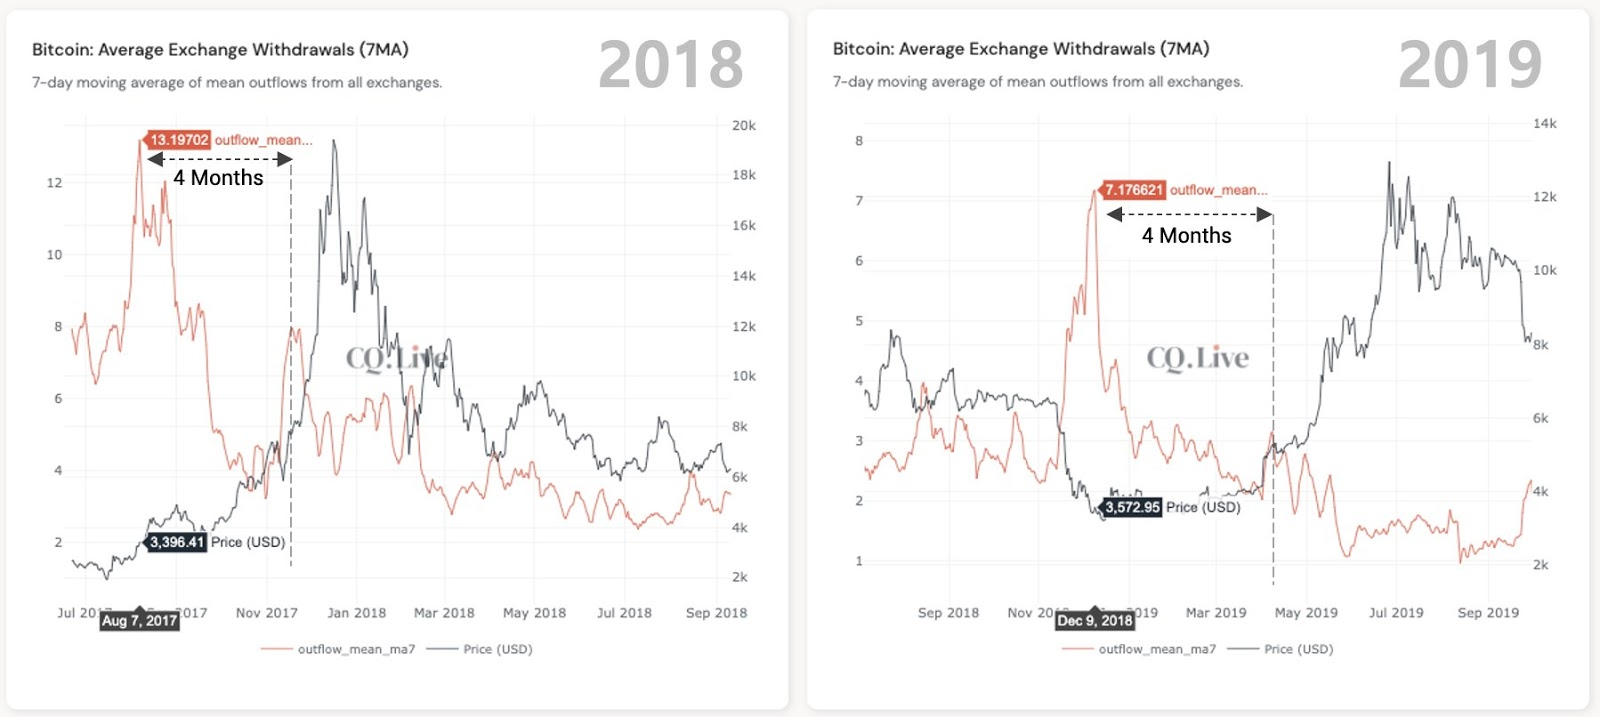 Bitcoin average exchange withdrawals comparison. Source: Ki Young Ju/ Twitter